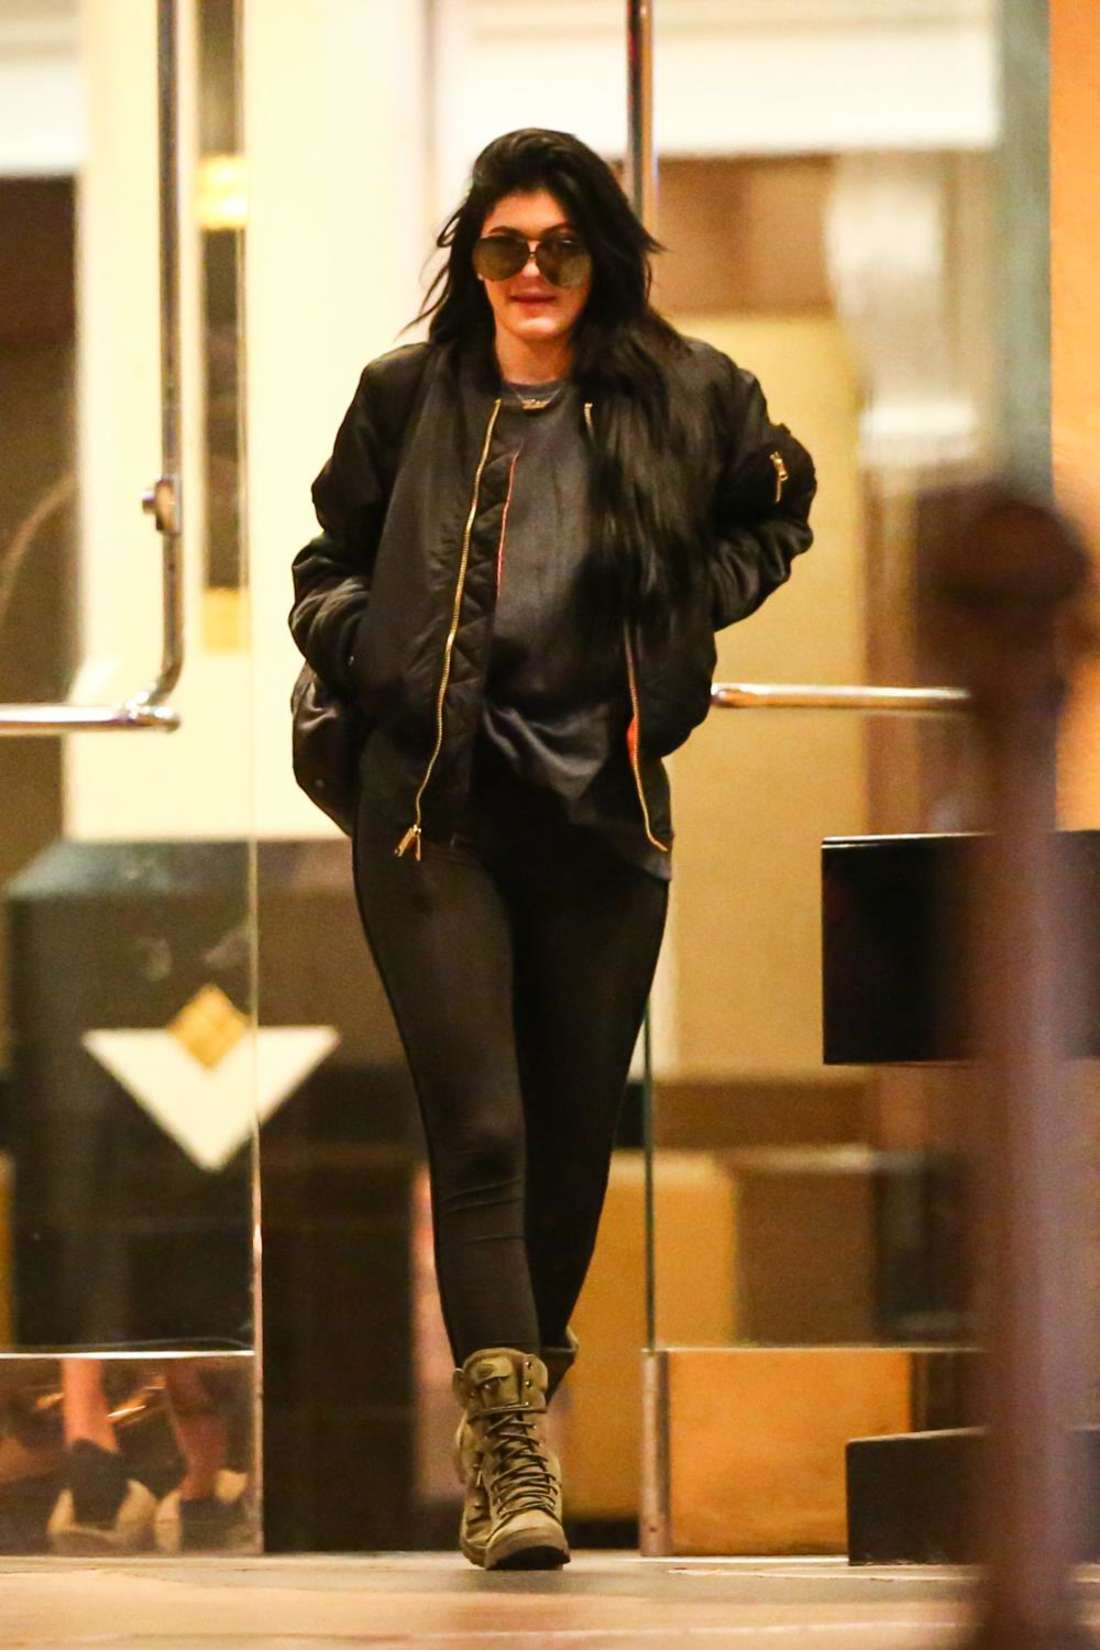 Kylie Jenner in Spandex Out in Los Angeles